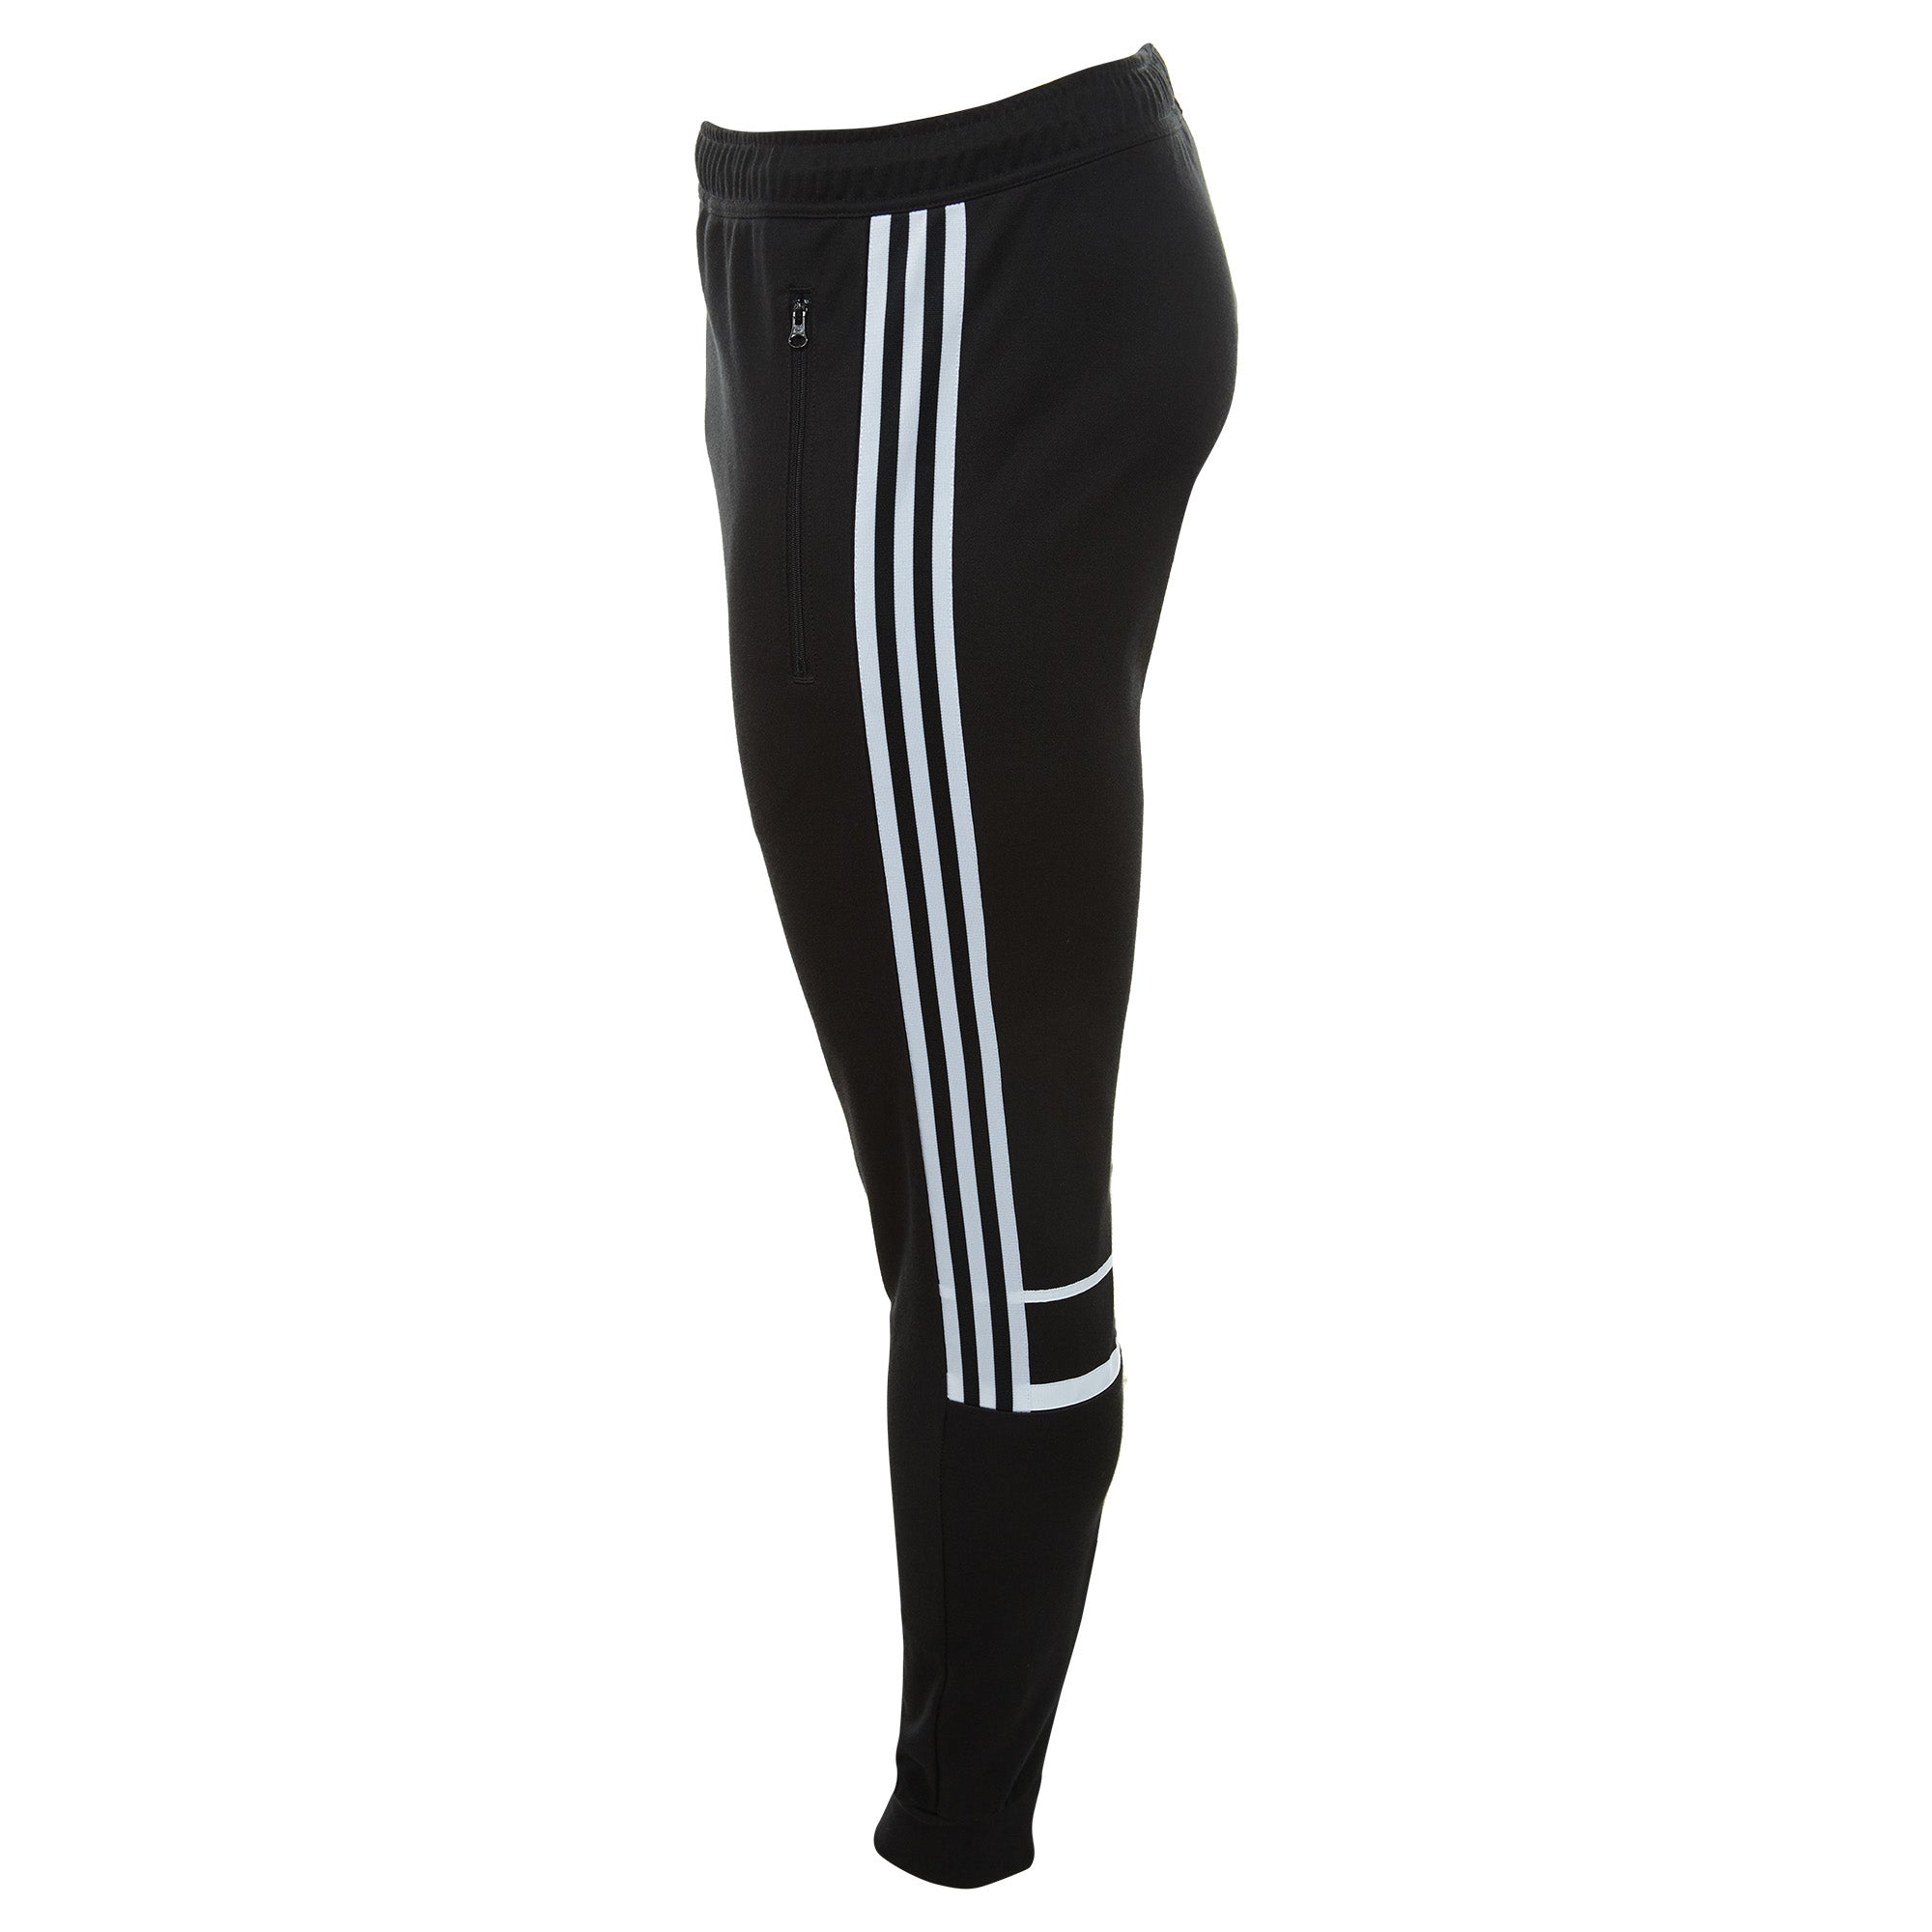 Adidas Clr84 Track Pant Mens Style : Bk5929 - Sneaker Experts